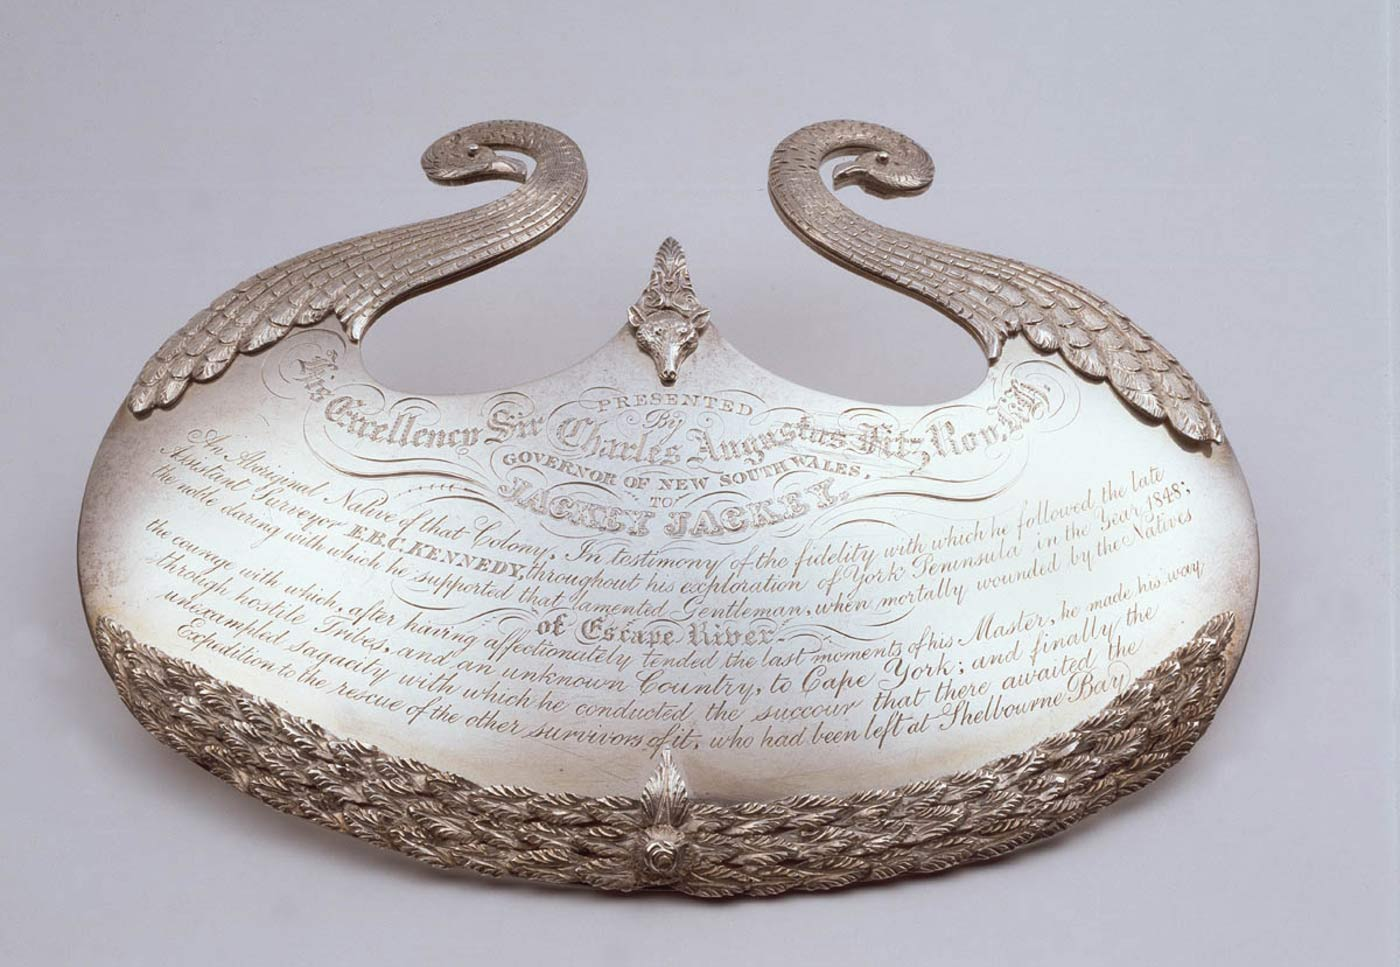 Silver gorget with ornate engraved design and text.